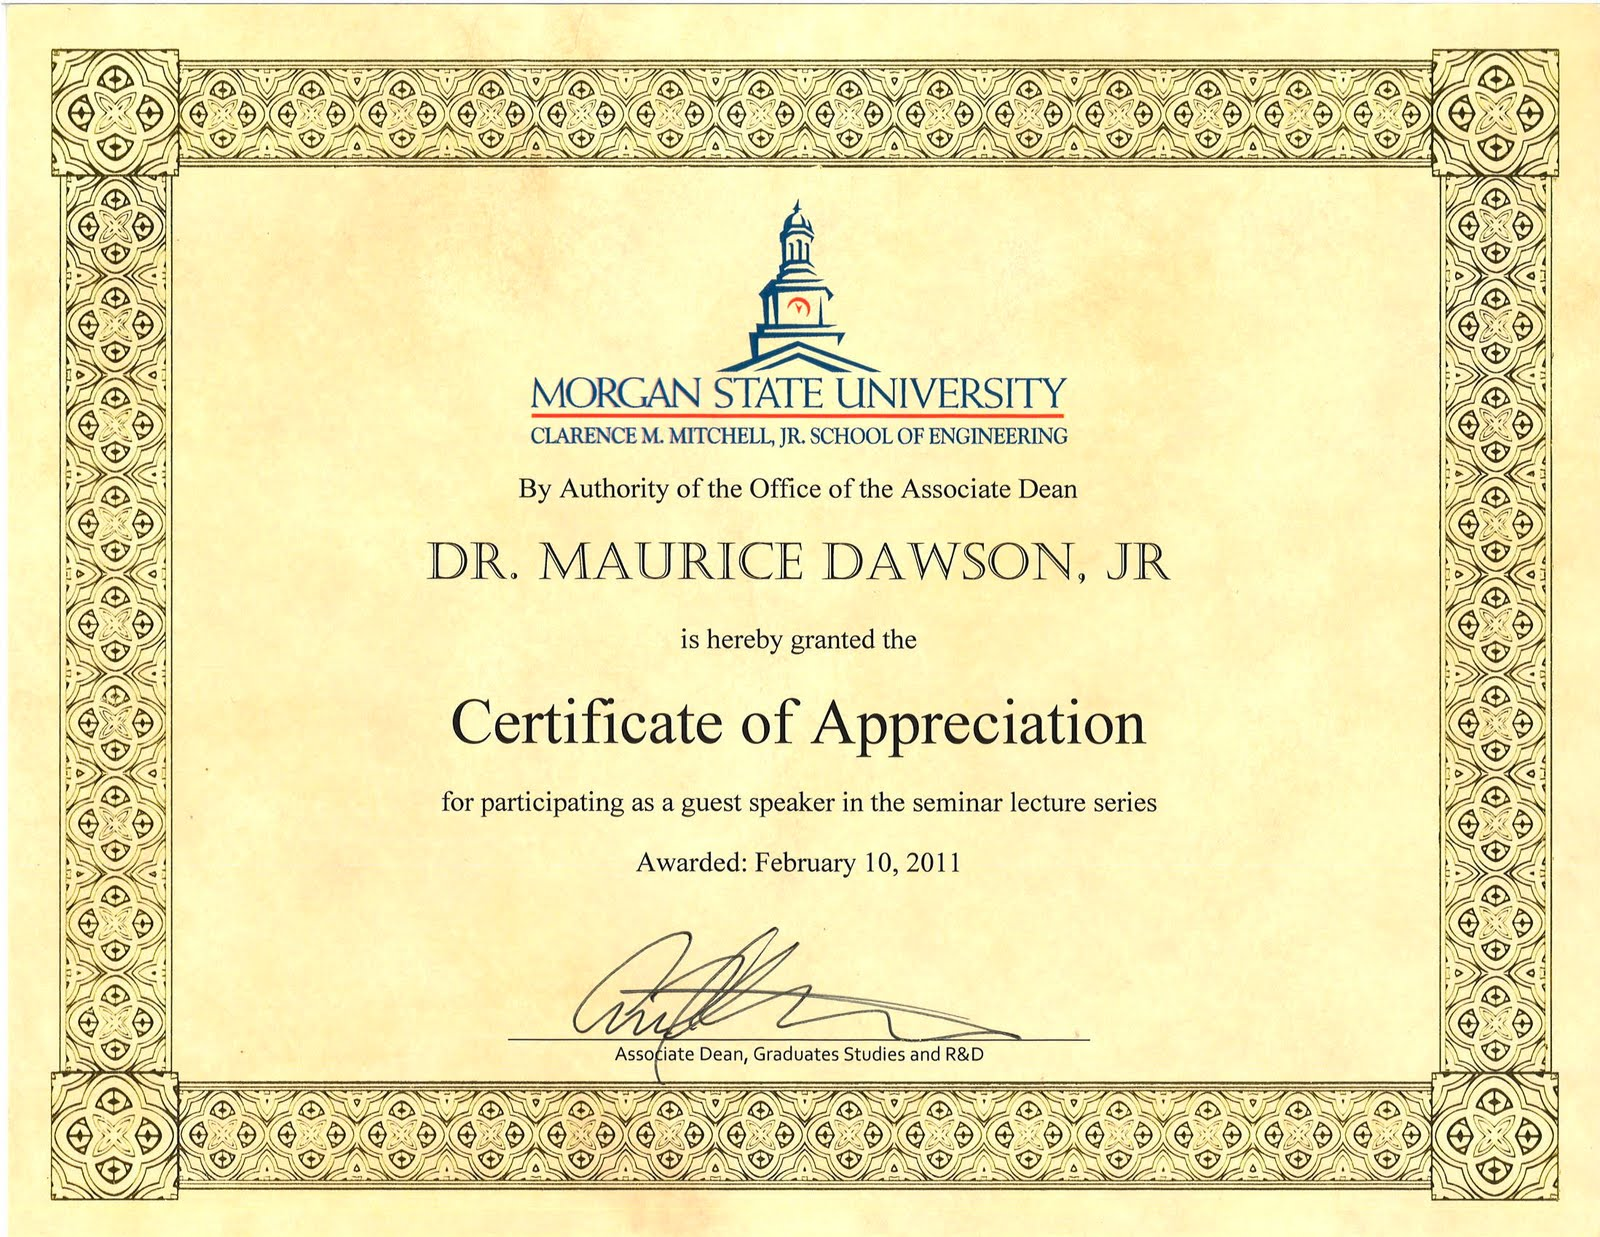 Technology knowledge and society march 2011 i had the pleasure of presenting to a group of graduate engineering students at morgan state university the presentation presented was systems of systems yadclub